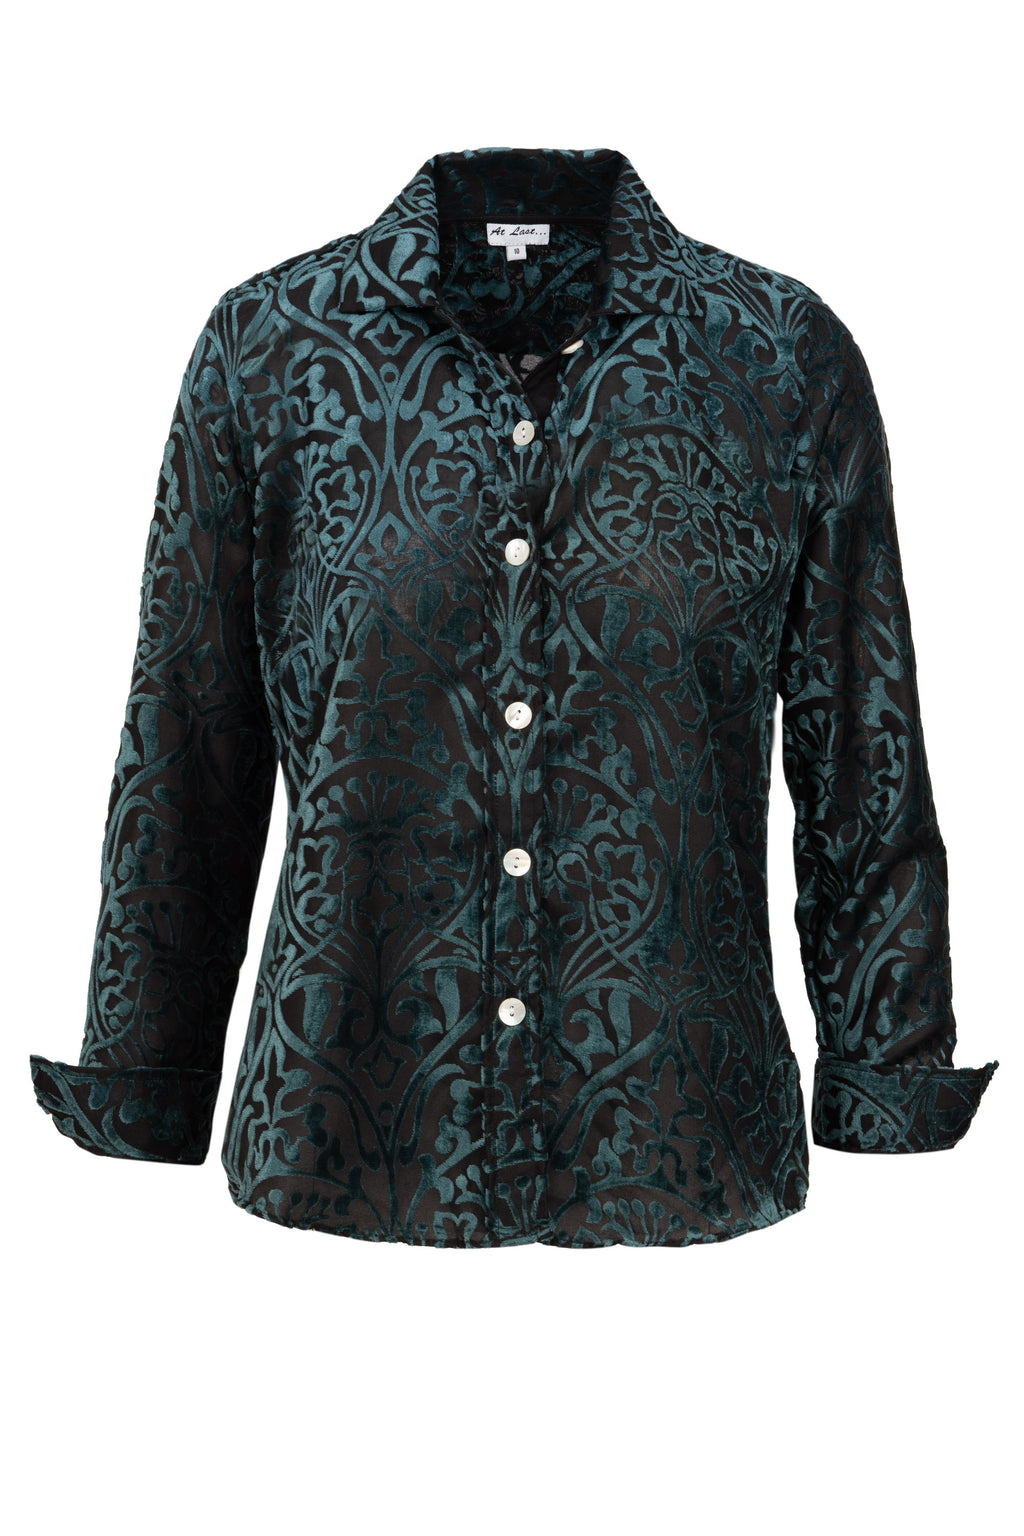 Karen Silk Velvet Shirt - Teal Flower